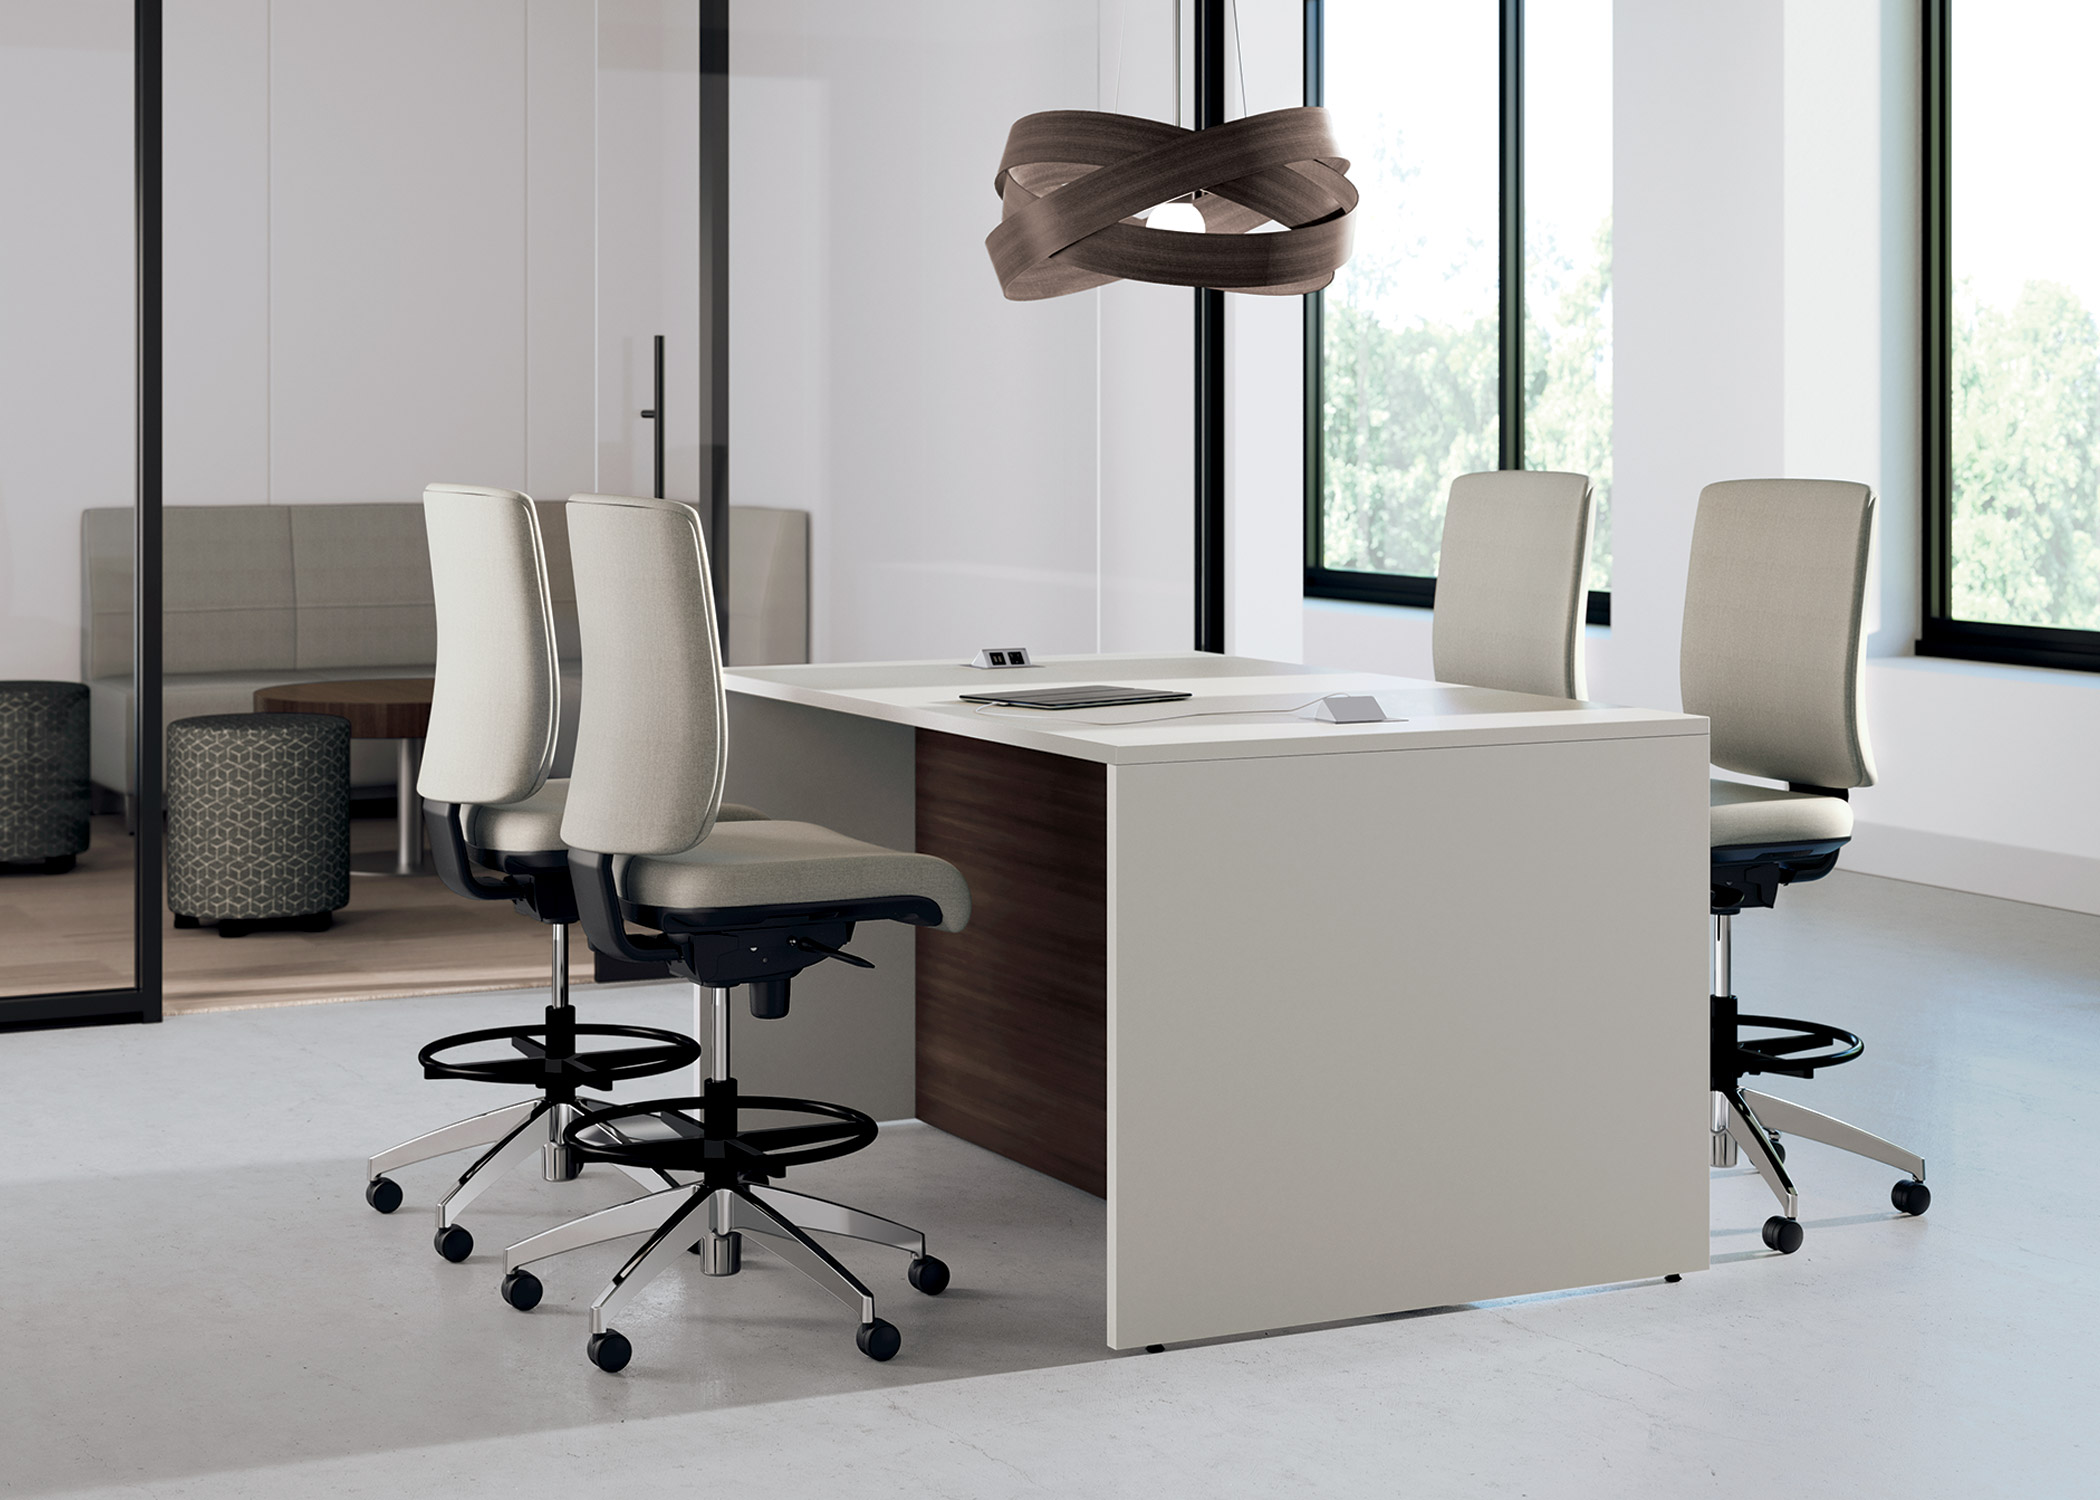 Office Furniture Chairs And Tables strassa collaborative tables | national office furniture